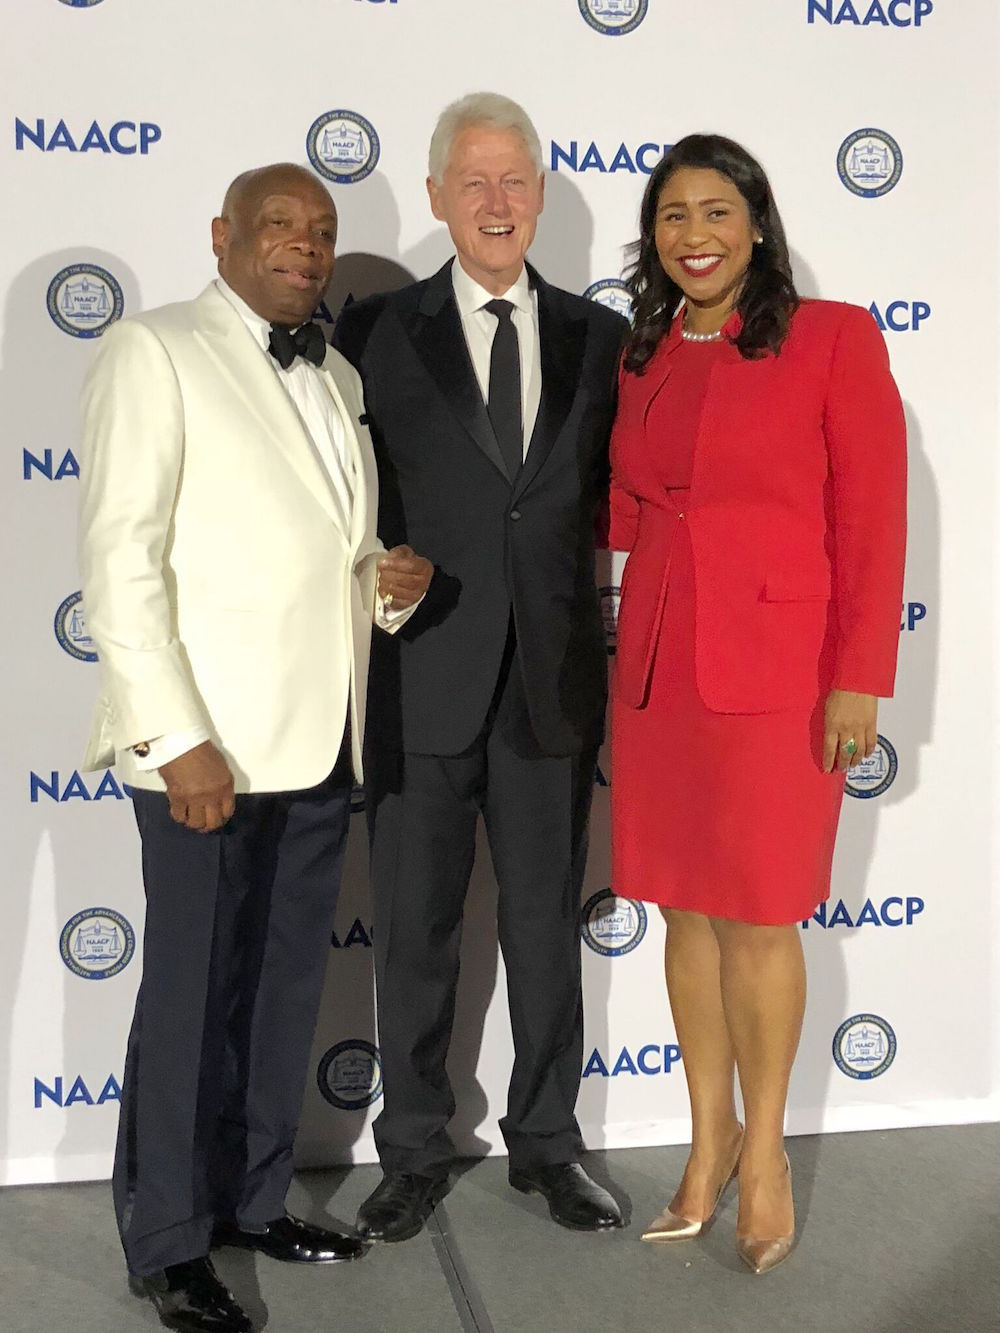 Breed with former mayor Willie Brown and President Bill Clinton at an NAACP event in July